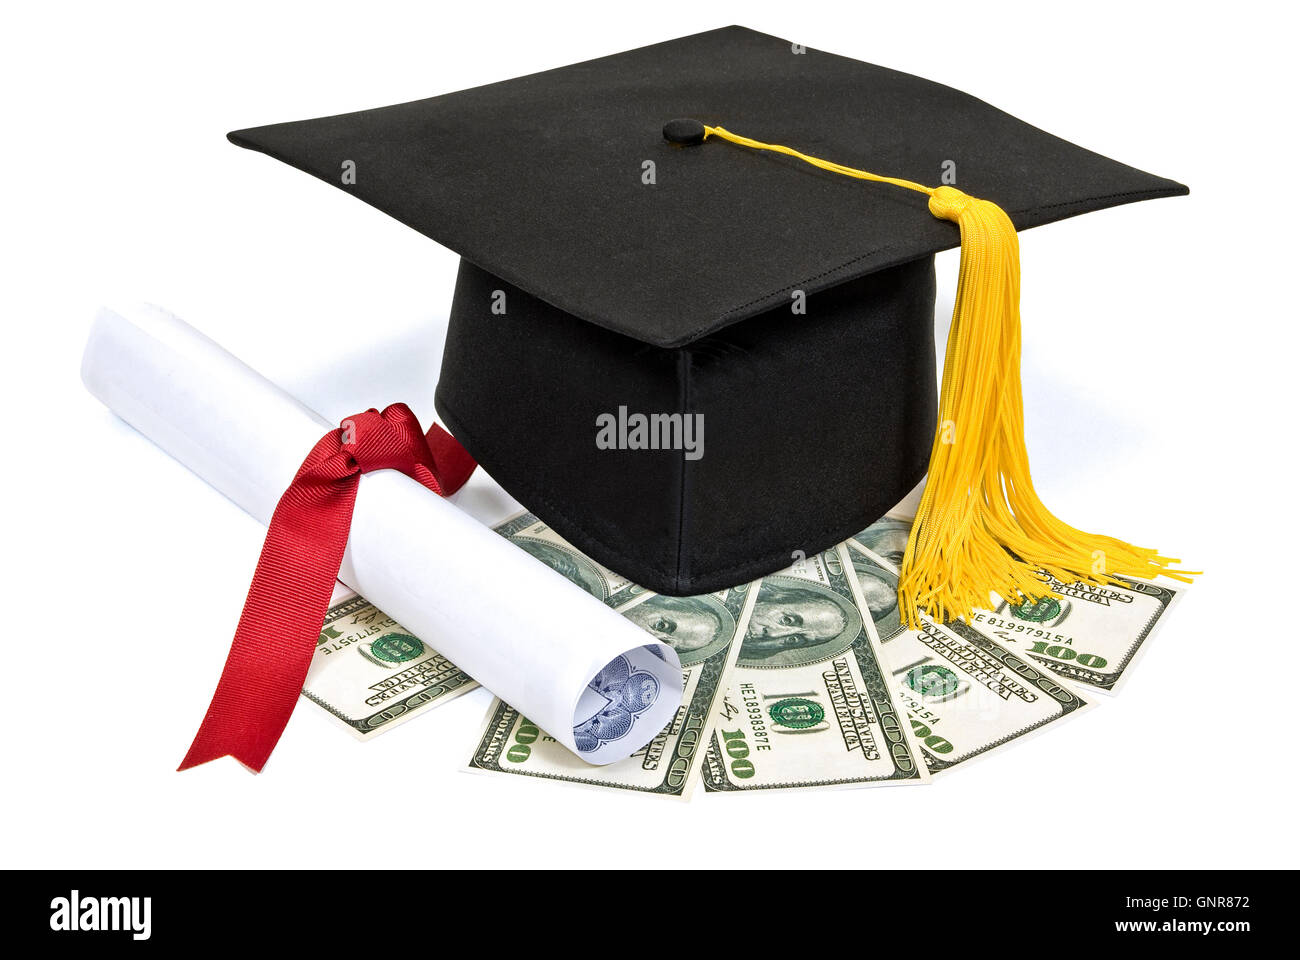 Graduation Hat With Diploma And Money - Stock Image